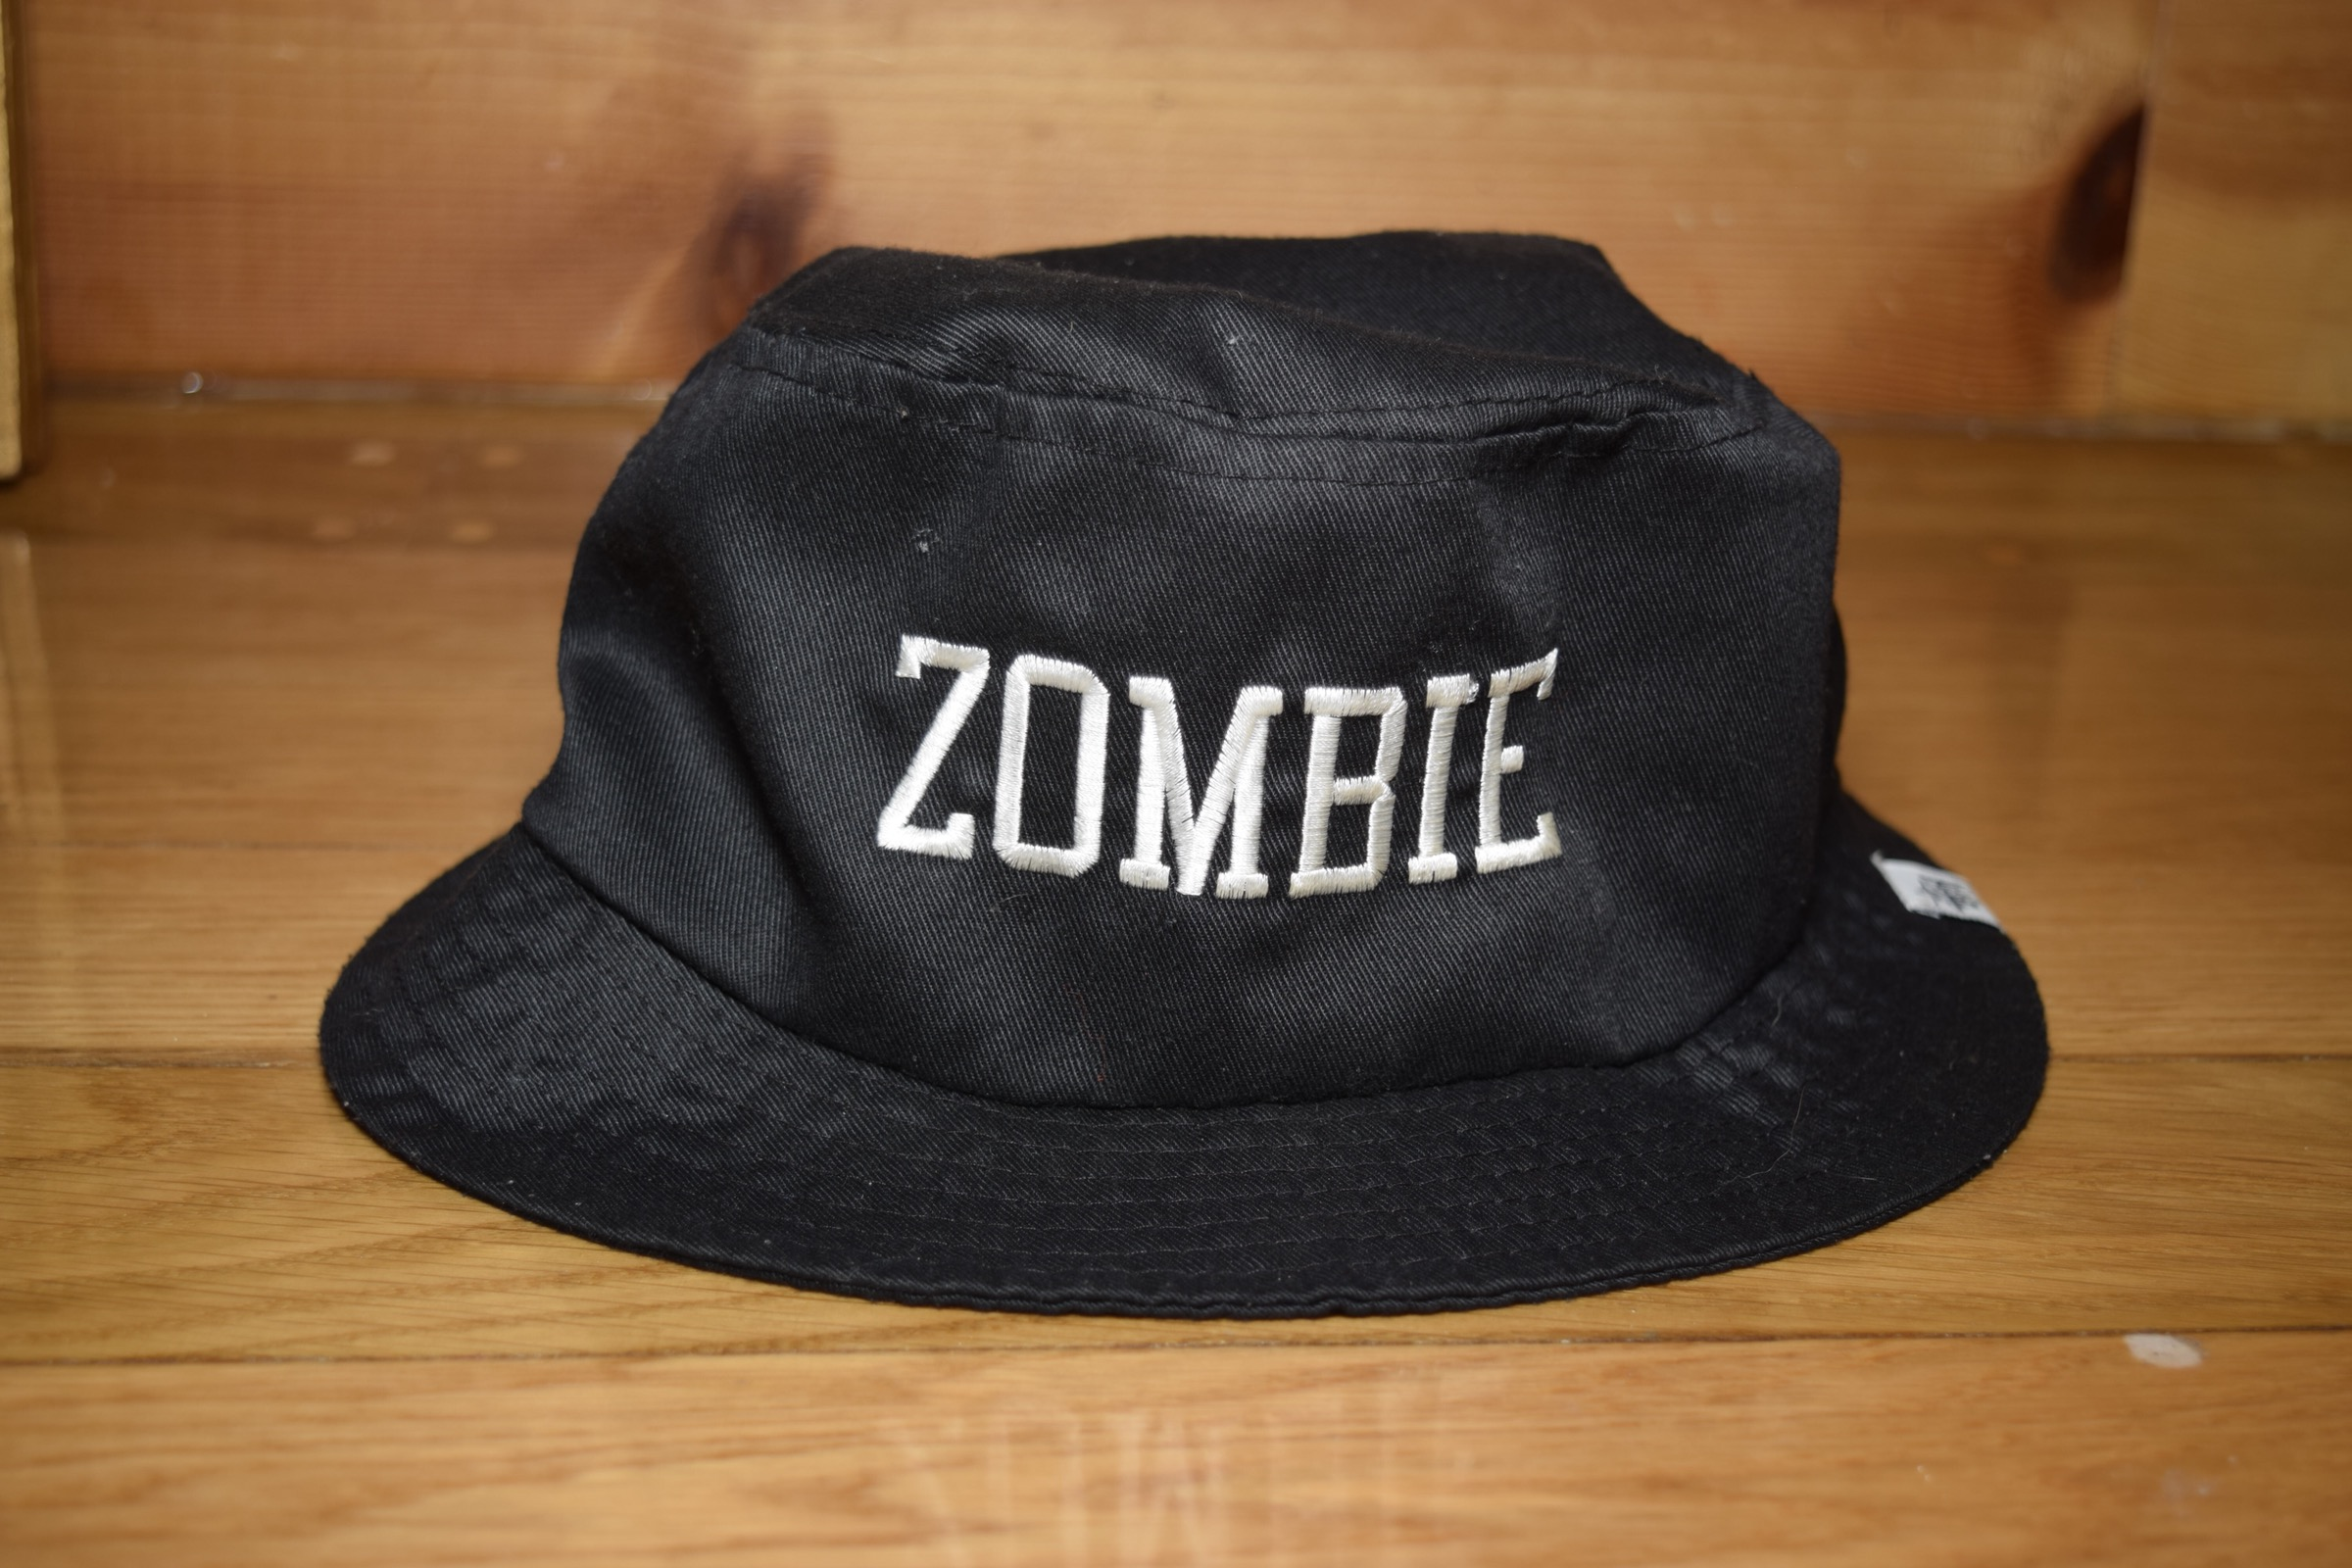 Stussy Flatbush Zombies x Stussy Bucket Hat Size one size - Hats for Sale -  Grailed 785a052b385